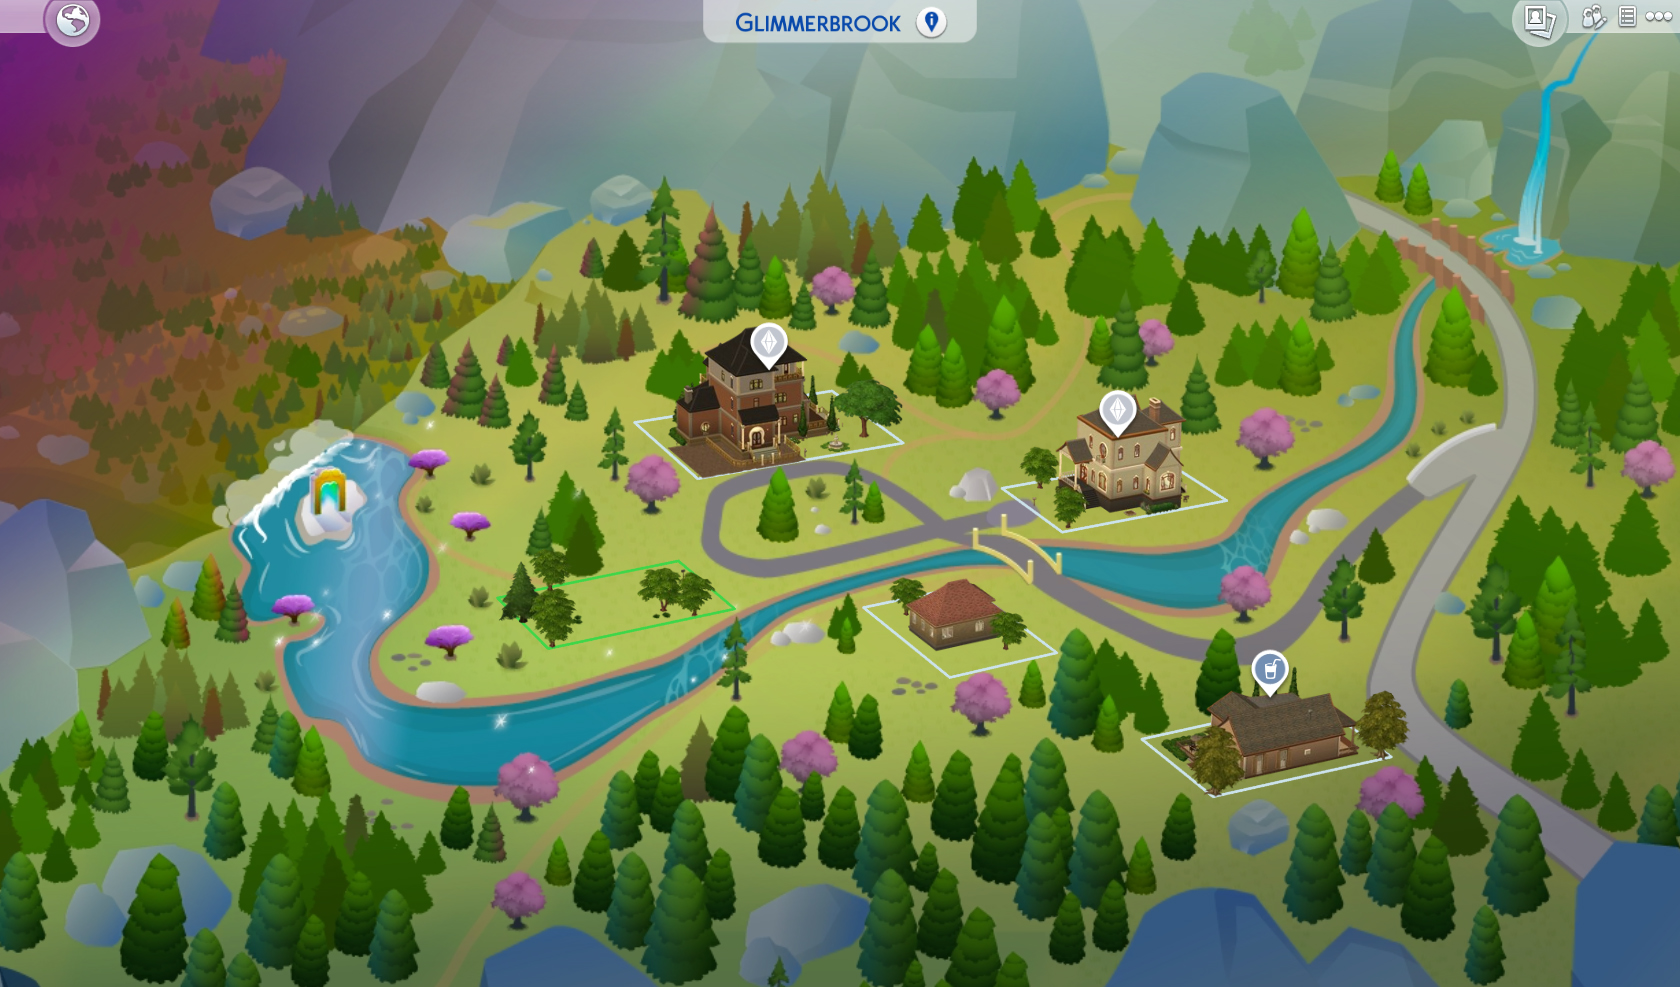 The Sims 4 Glimmerbrook